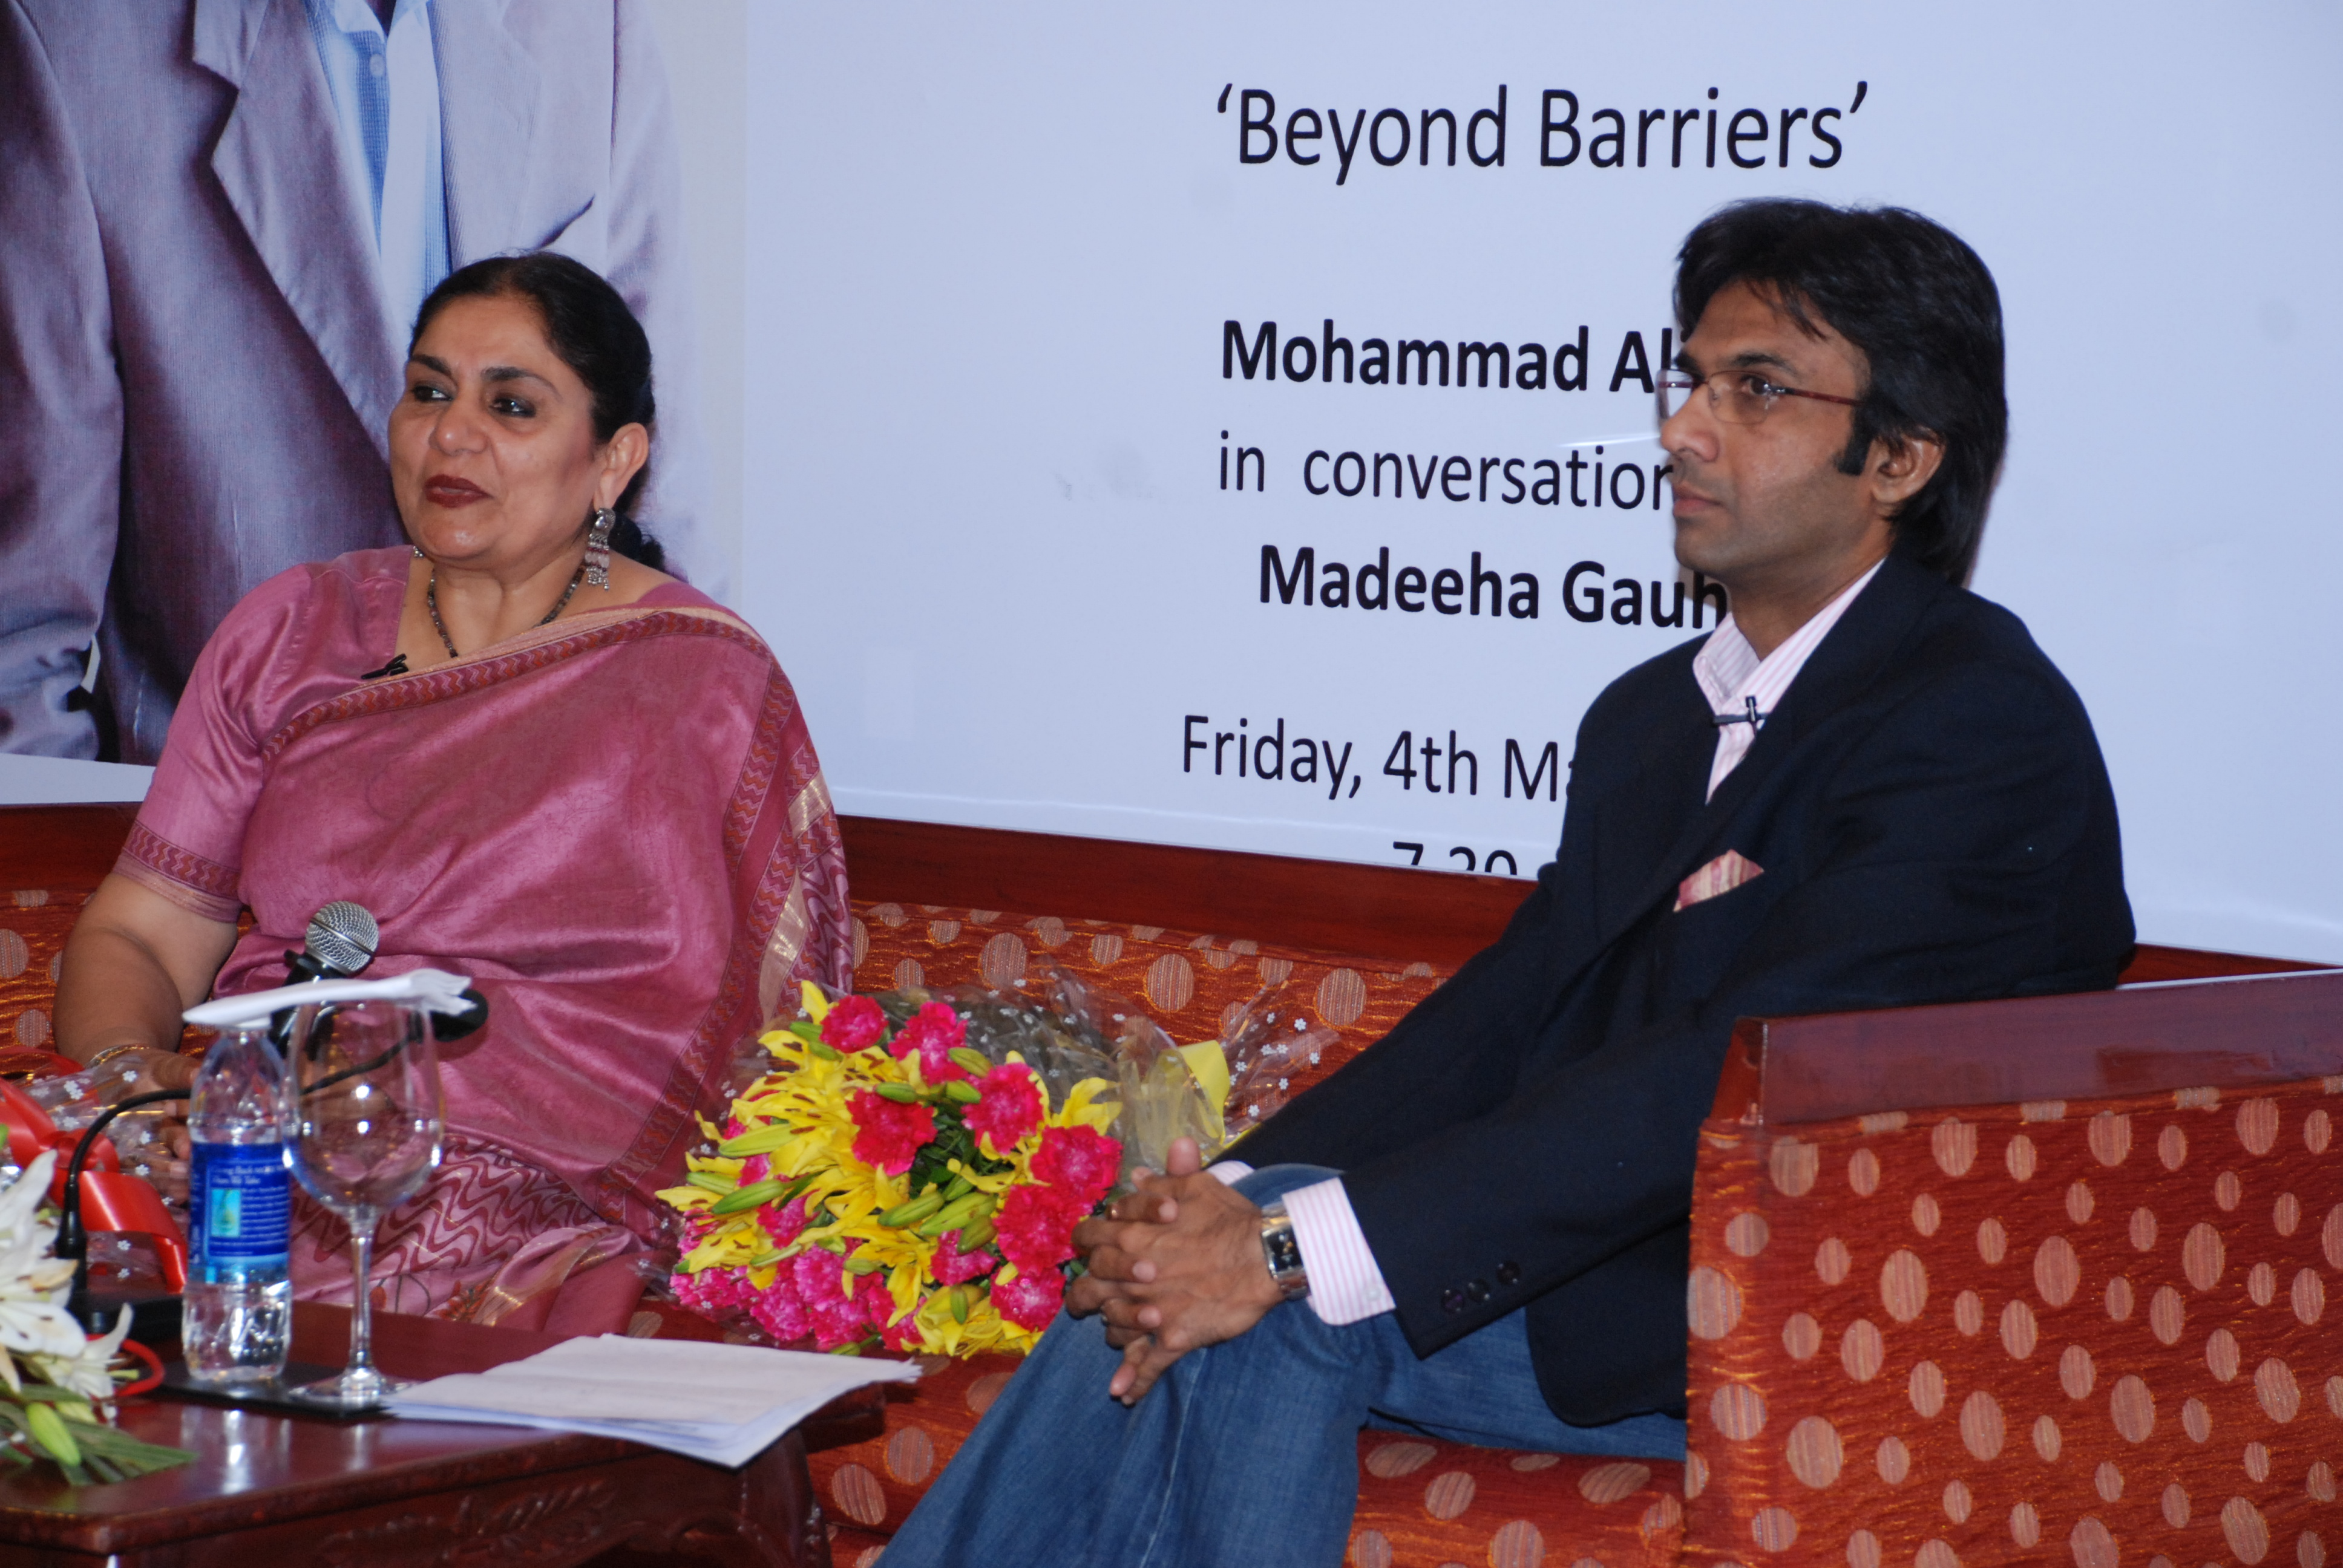 Madeeha Gauhar in conversation with Mohammad Ali Baig on 'Beyond Barriers'